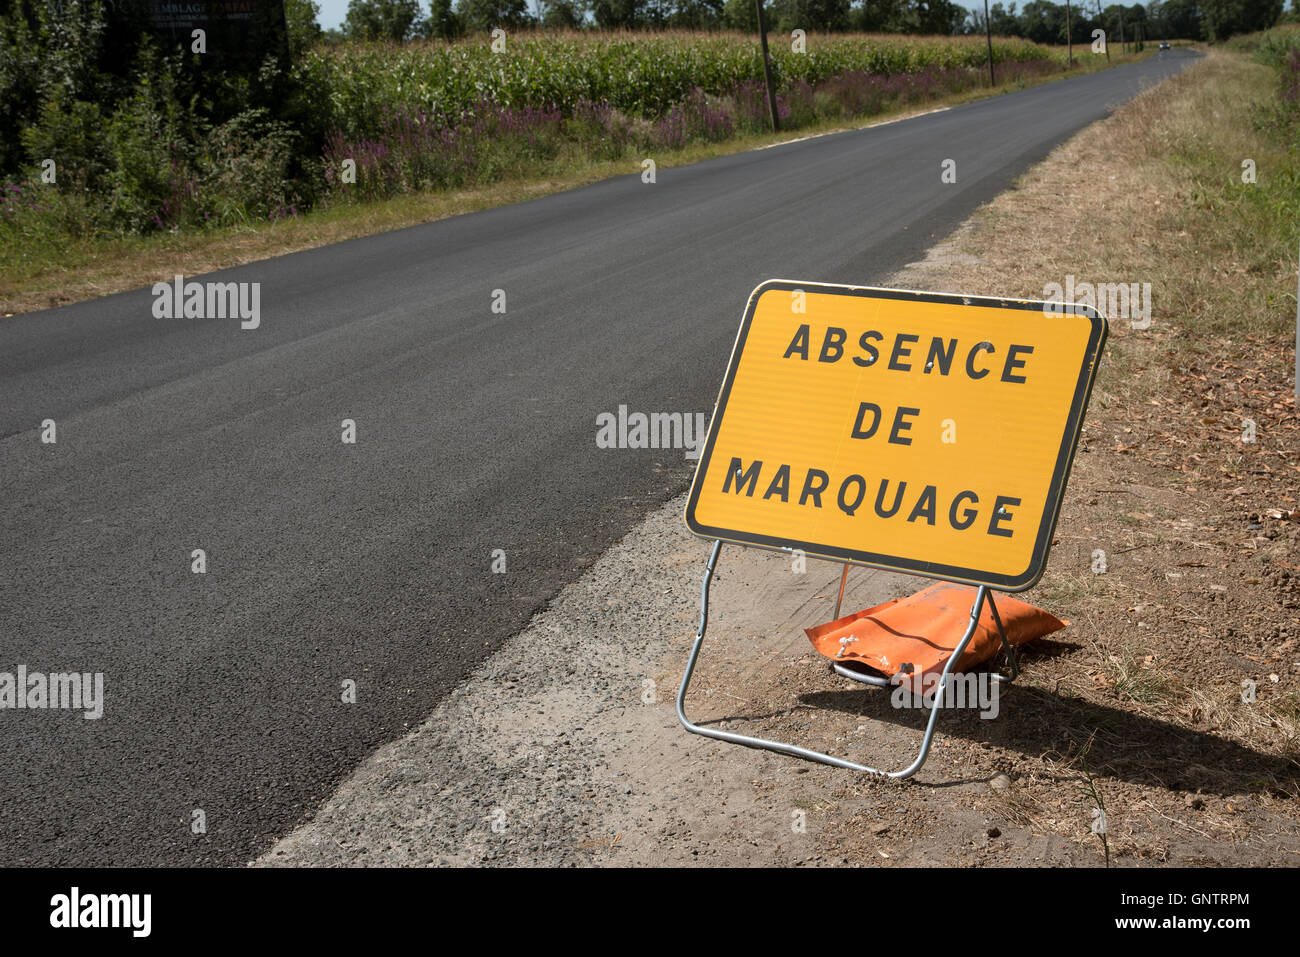 Medoc Bordeaux France - Roadside sign advising motorists there are no road markings - Stock Image